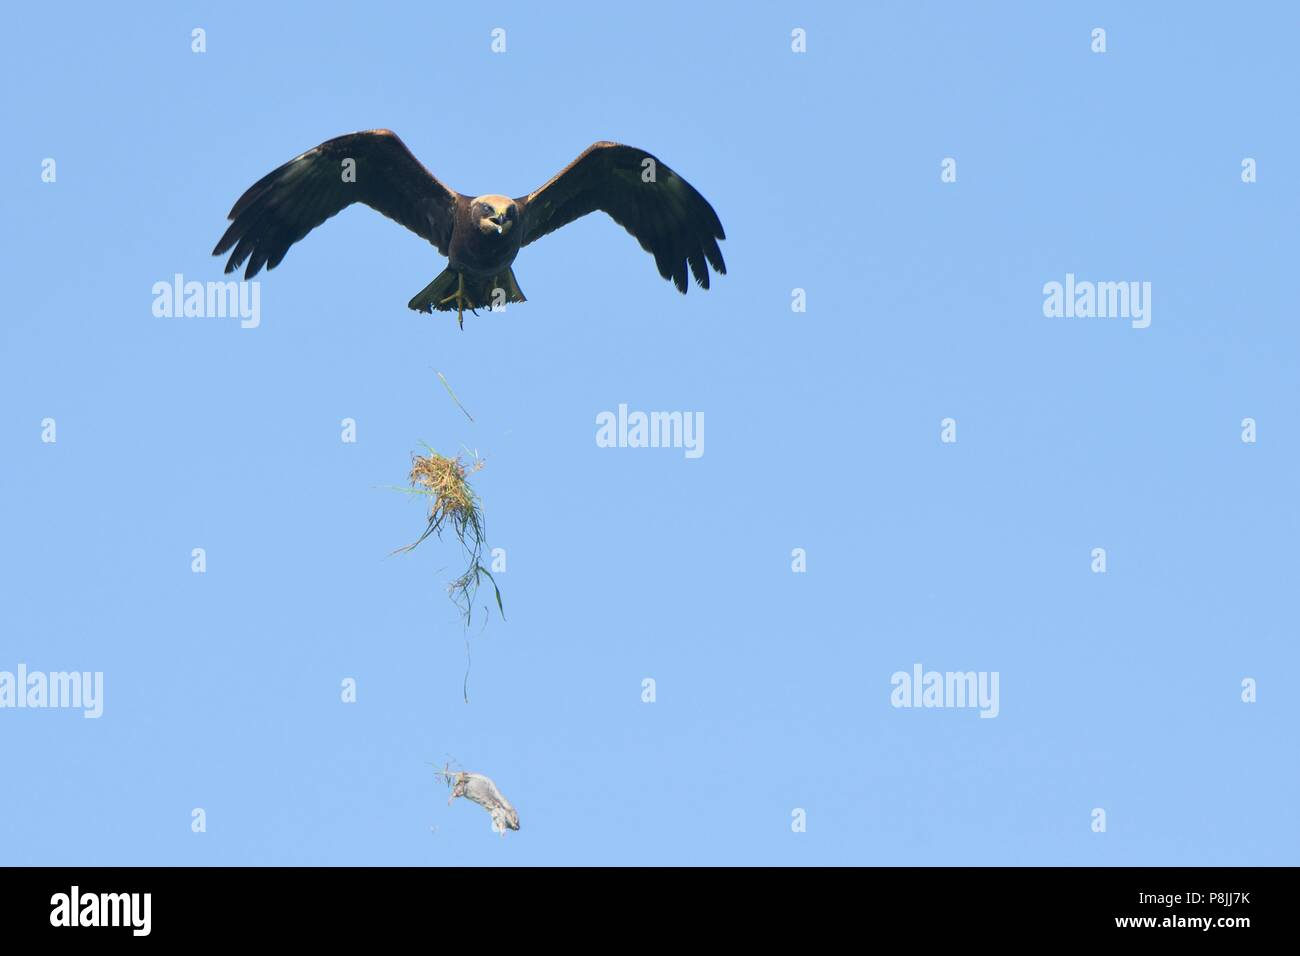 First winter Marsh harrier in flight drops just caught vole in the air - Stock Image